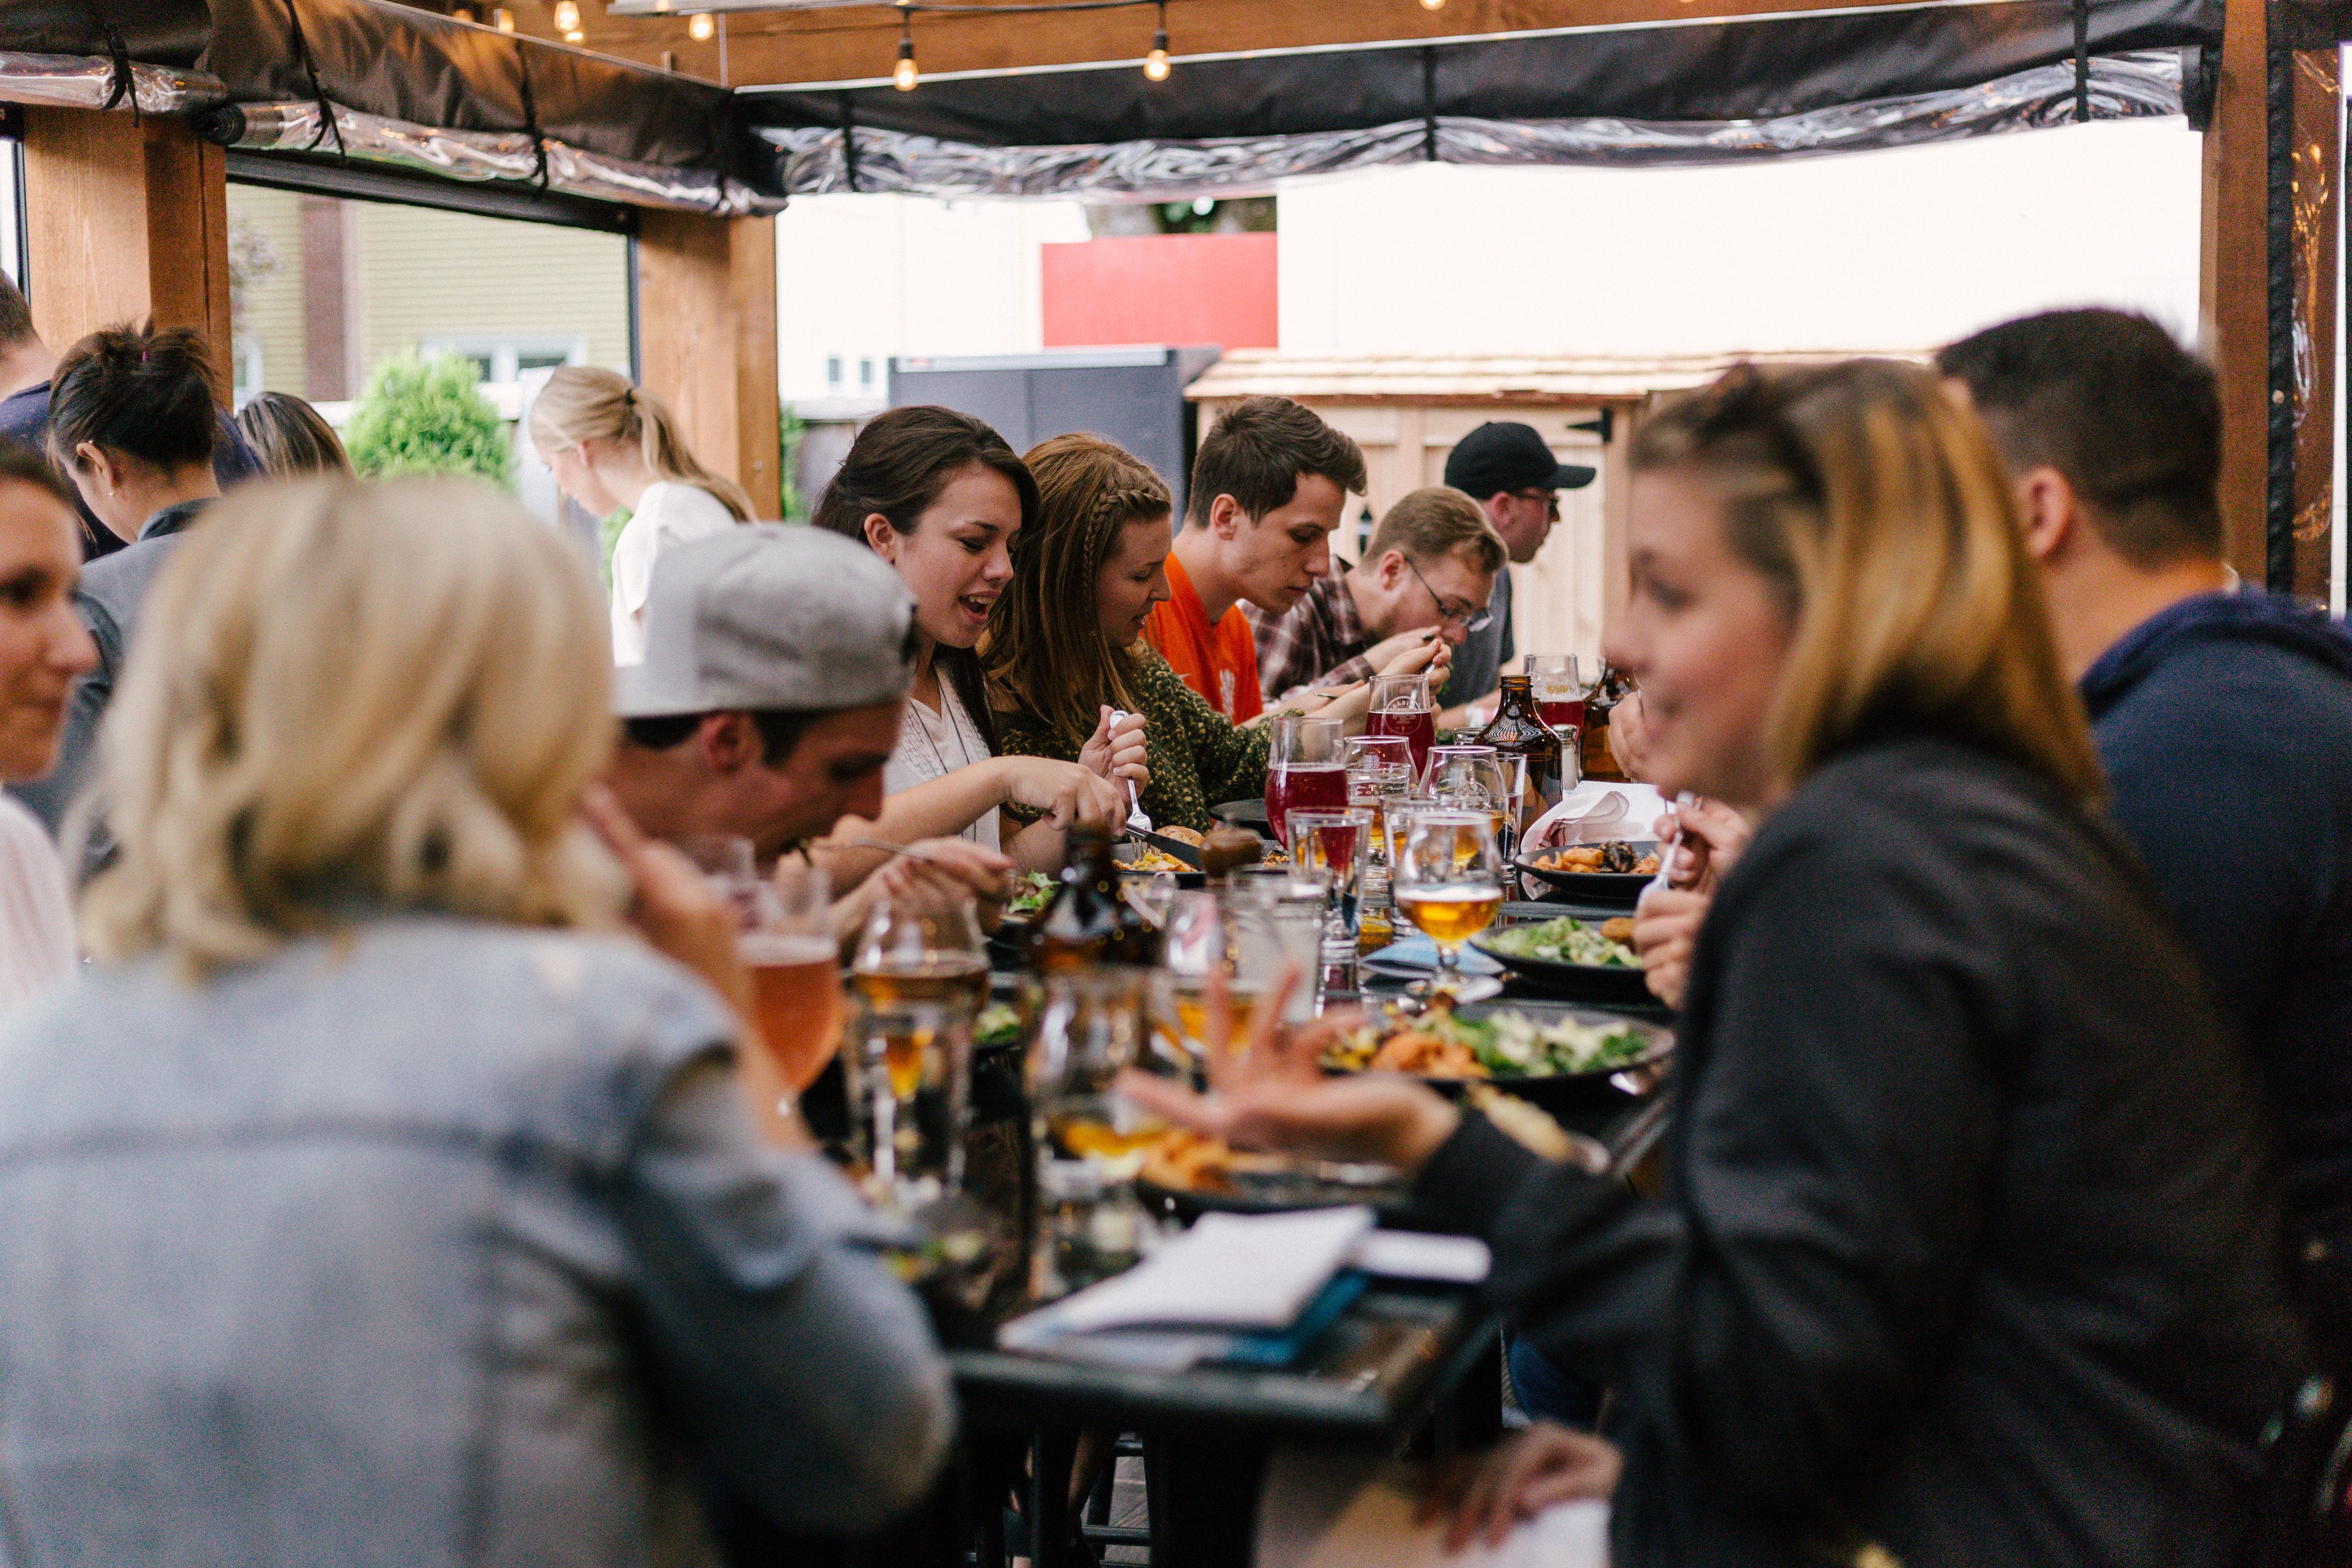 friends enjoying food together on an outdoor patio